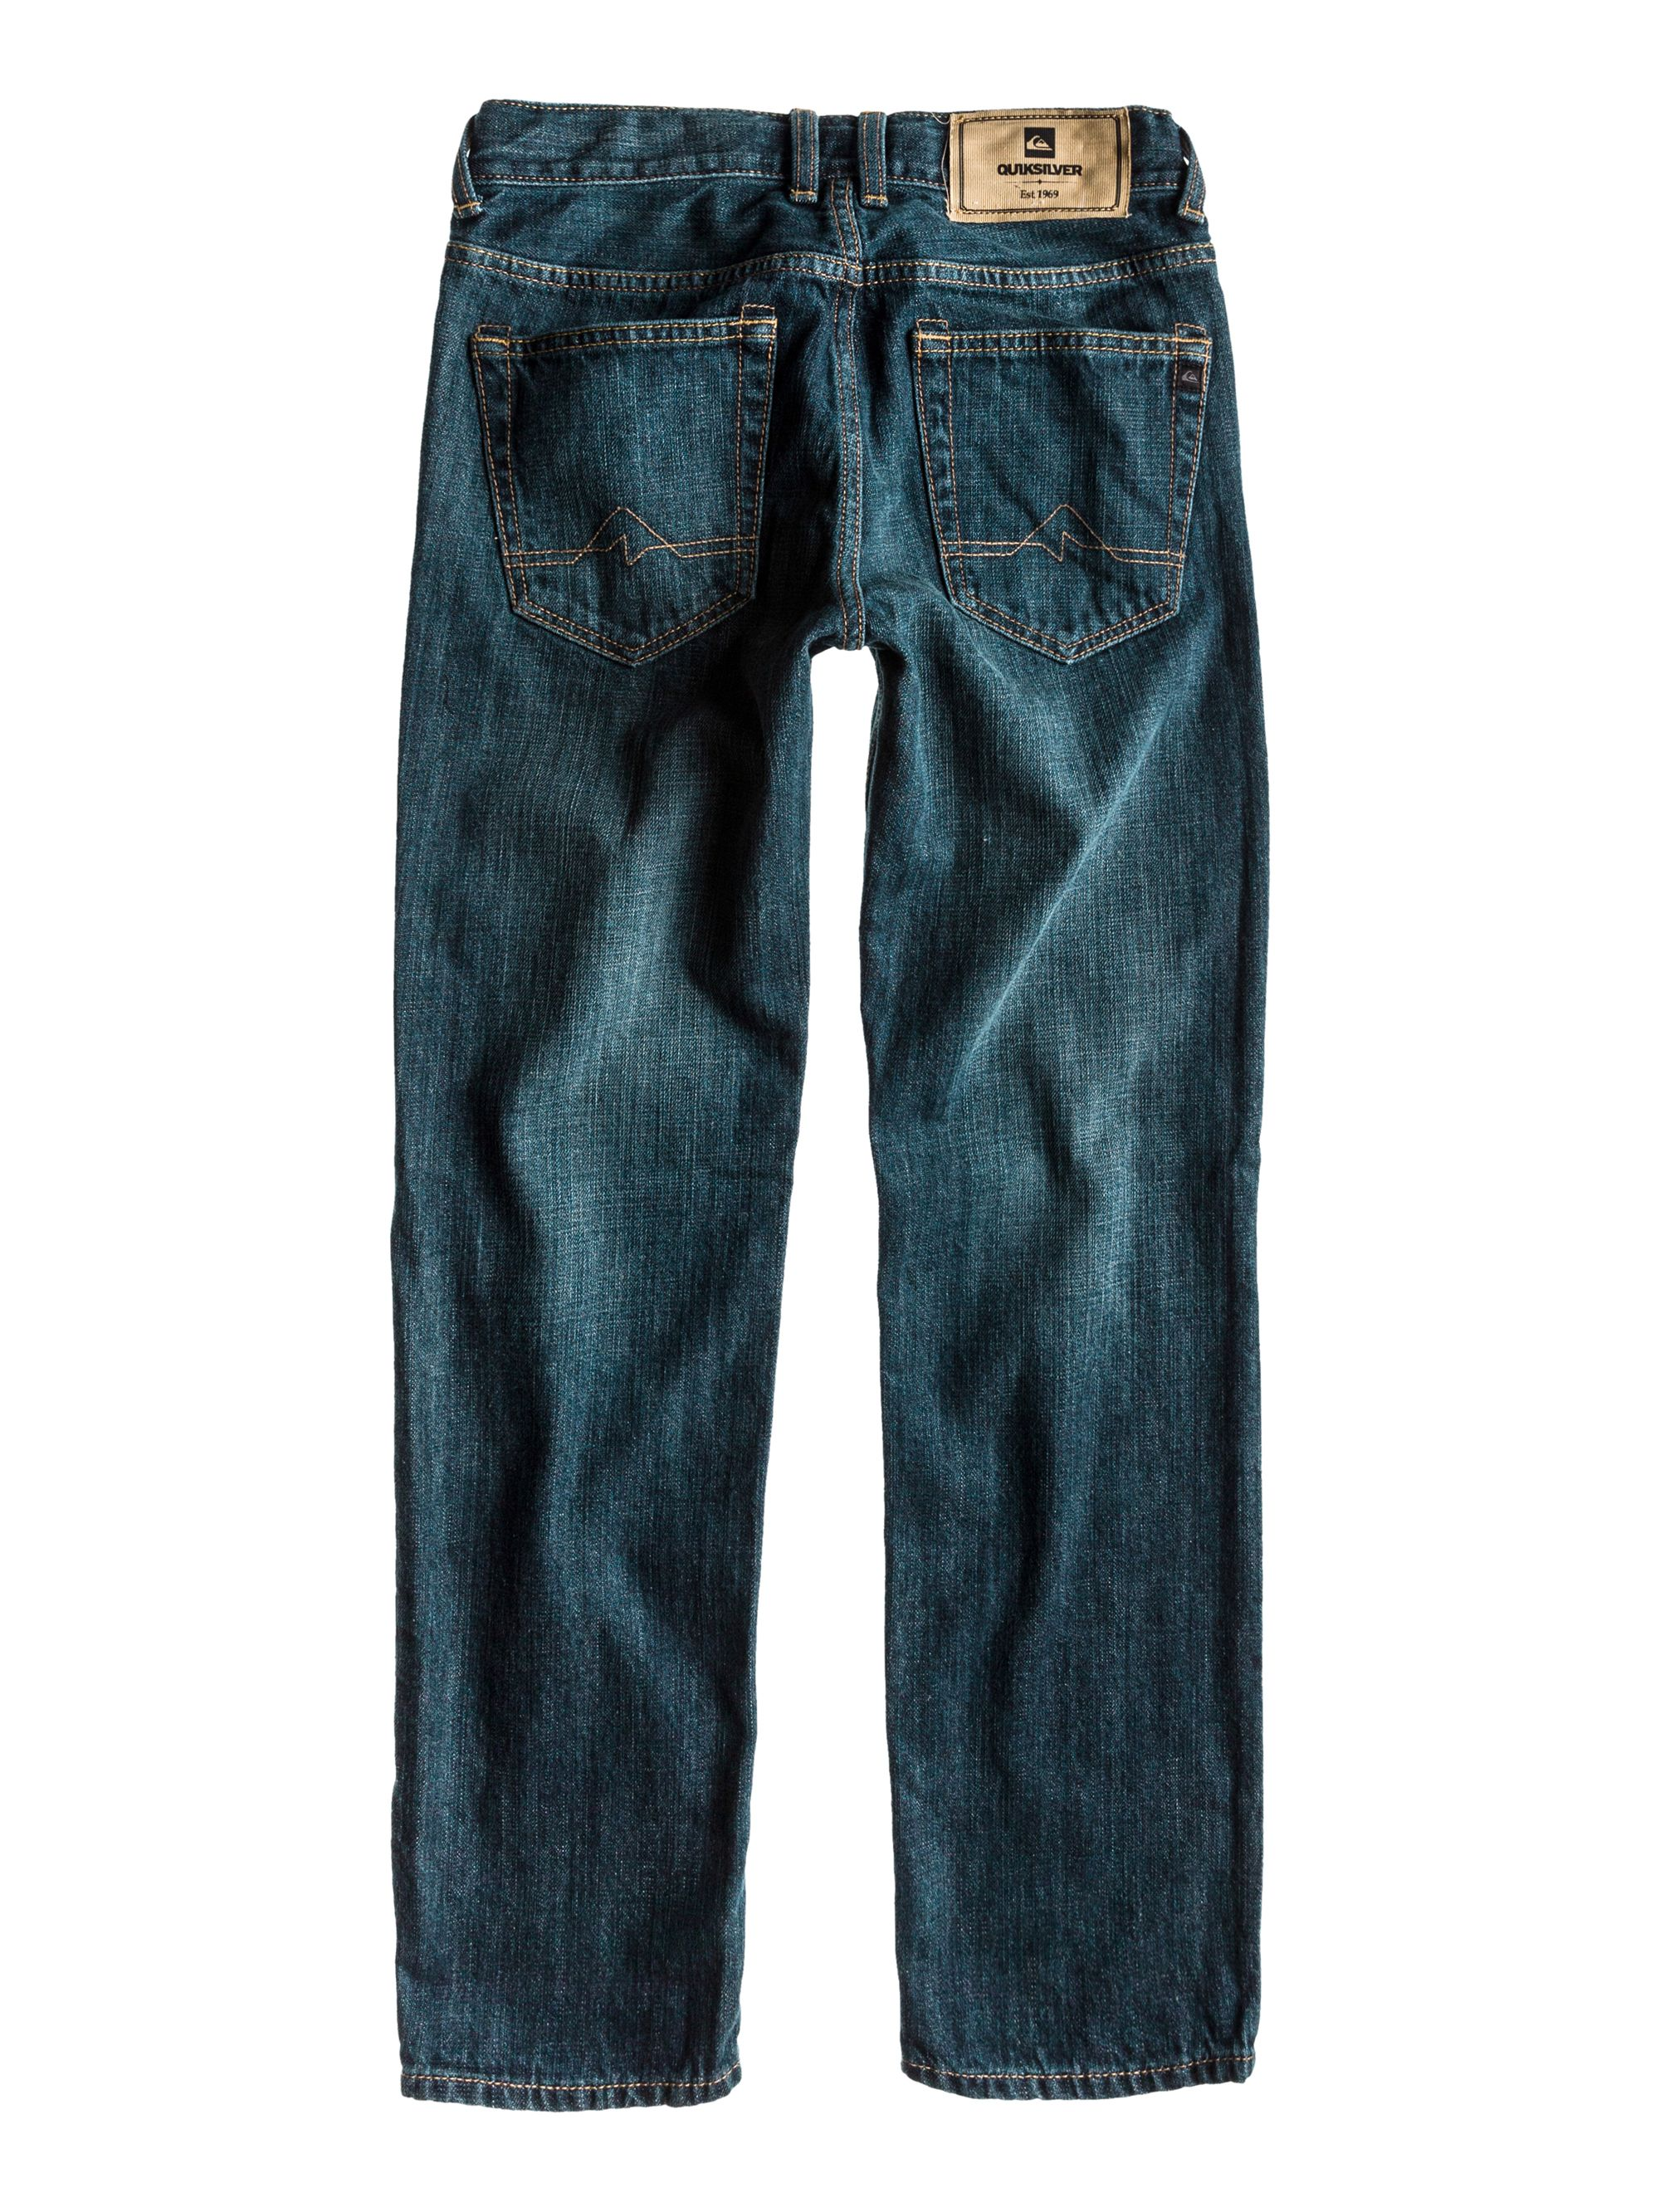 Boys sequel york jeans